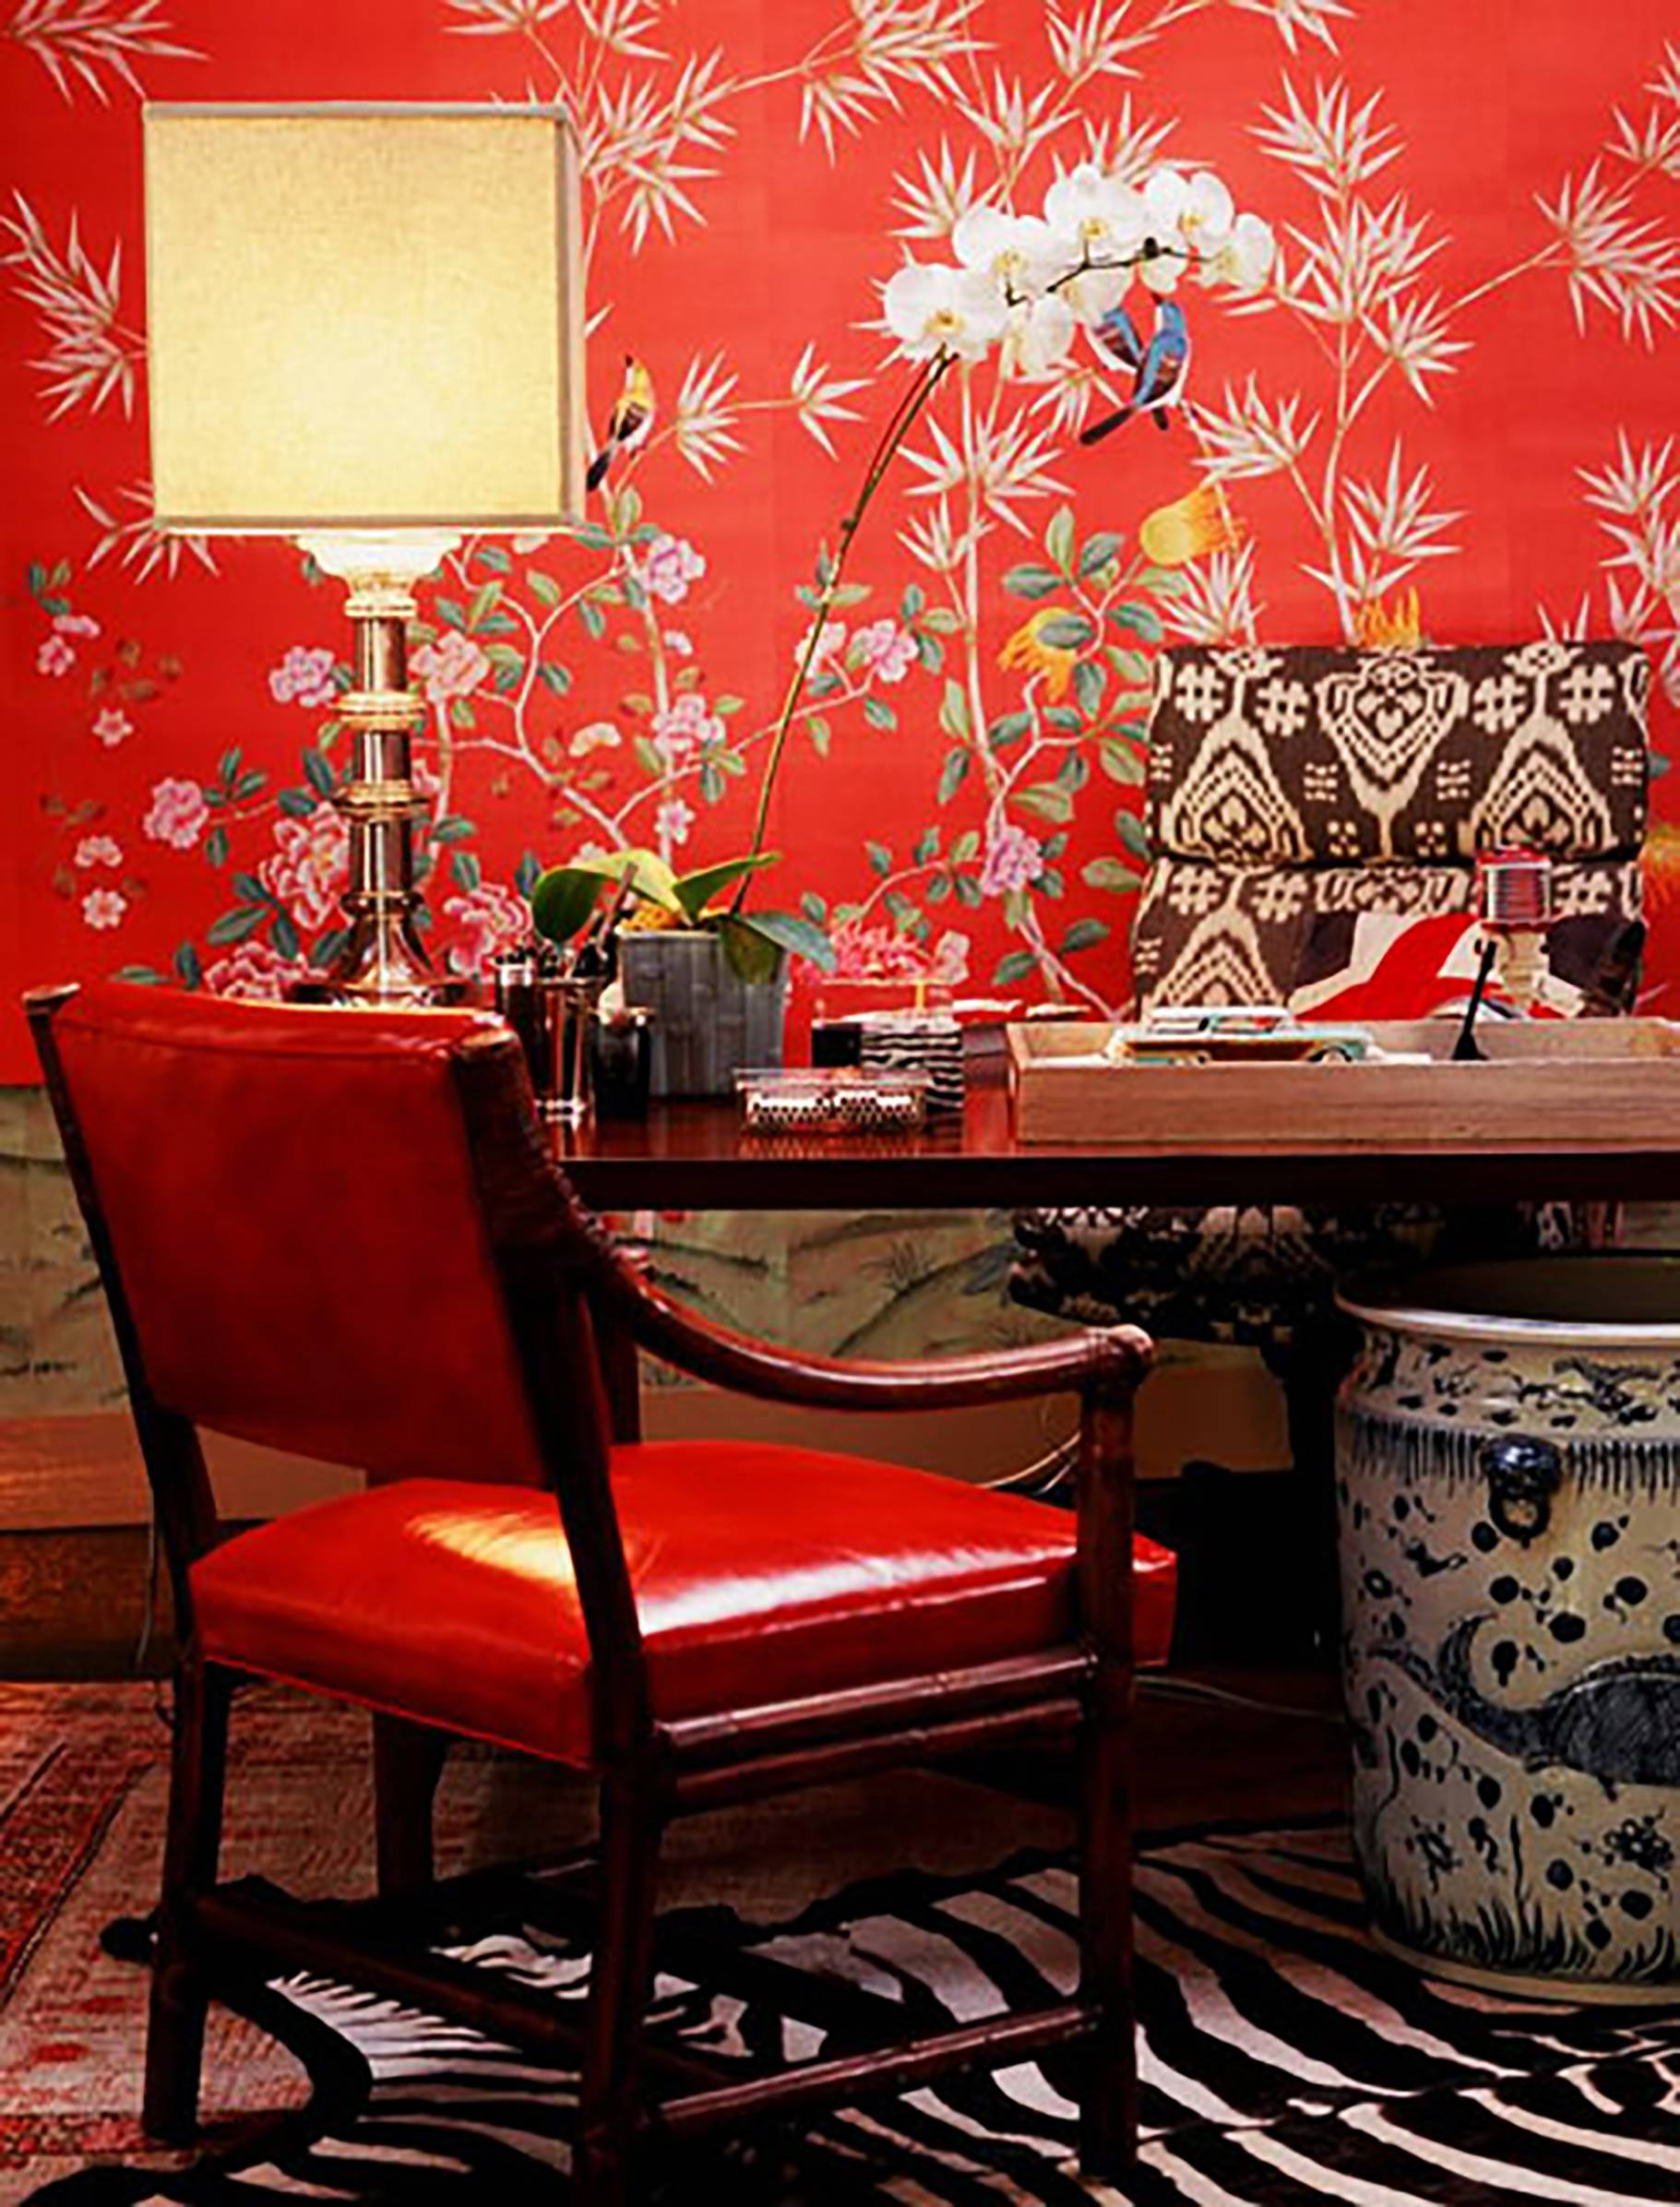 Bold red wallpaper and upholstery are combined with neutral colors to create a lively but cohesive design for this home office.